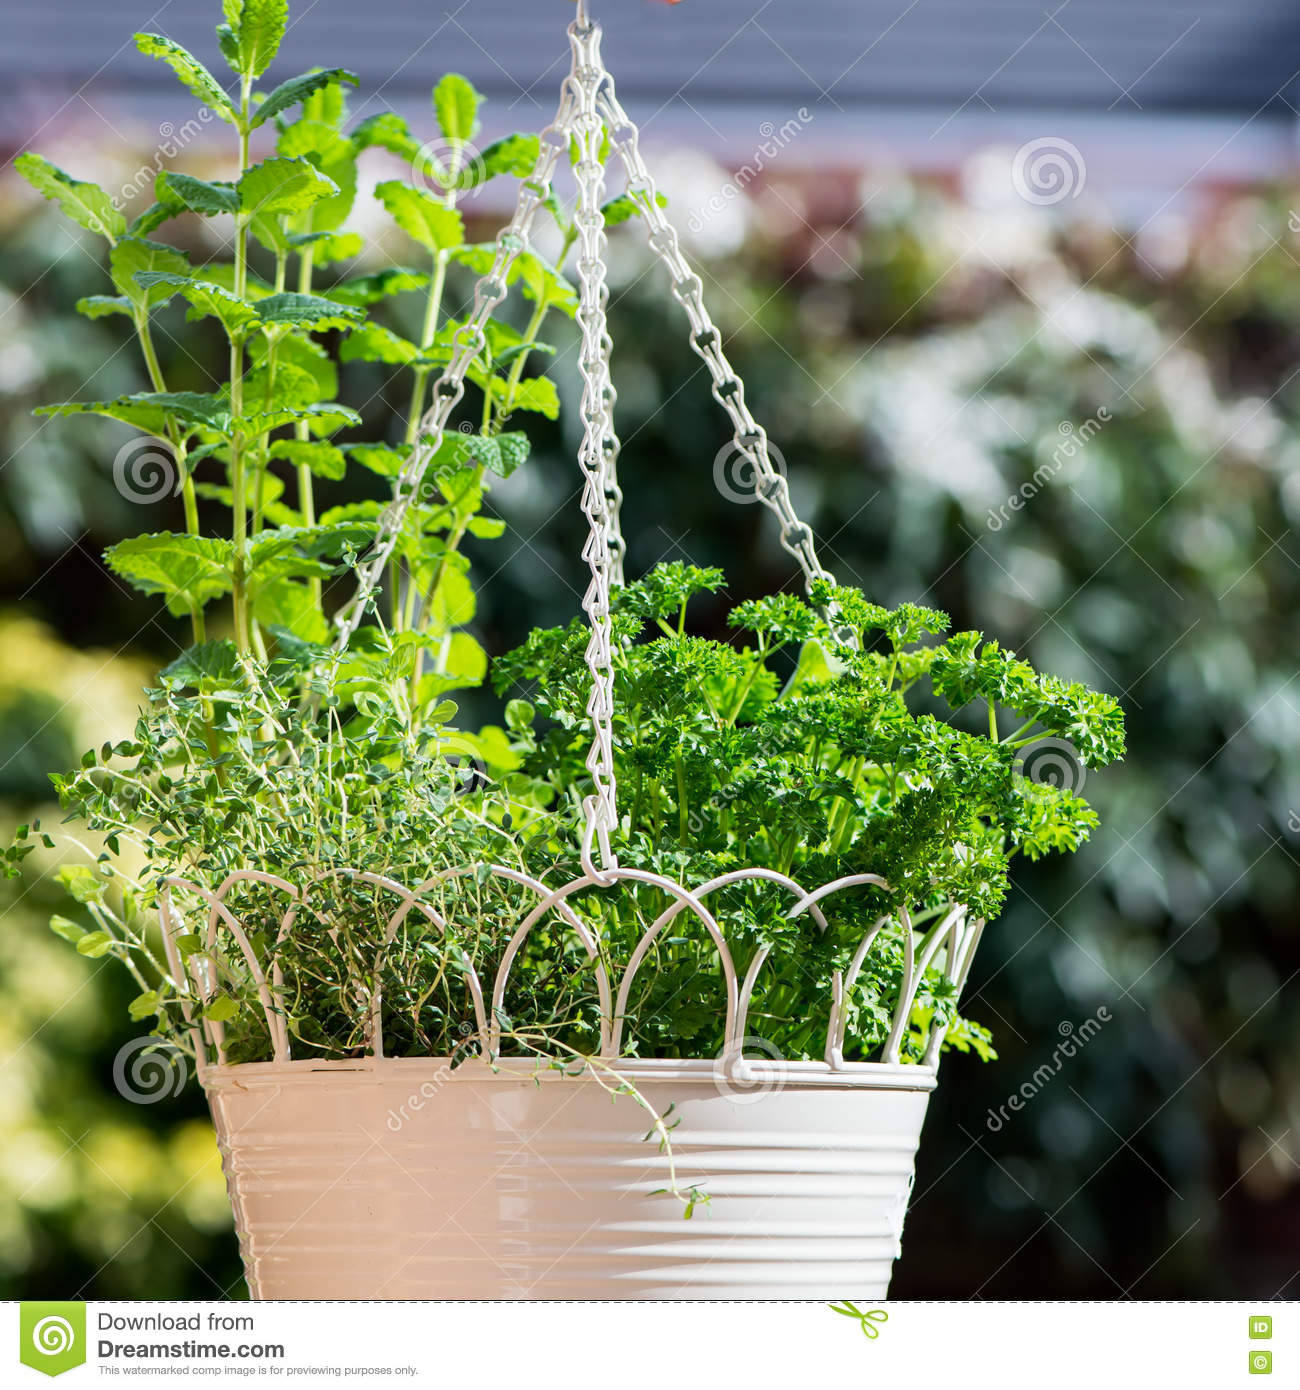 3571dfe2e4d5 Fresh Herbs In Hanging Outdoor Basket Stock Image - Image of harvest ...